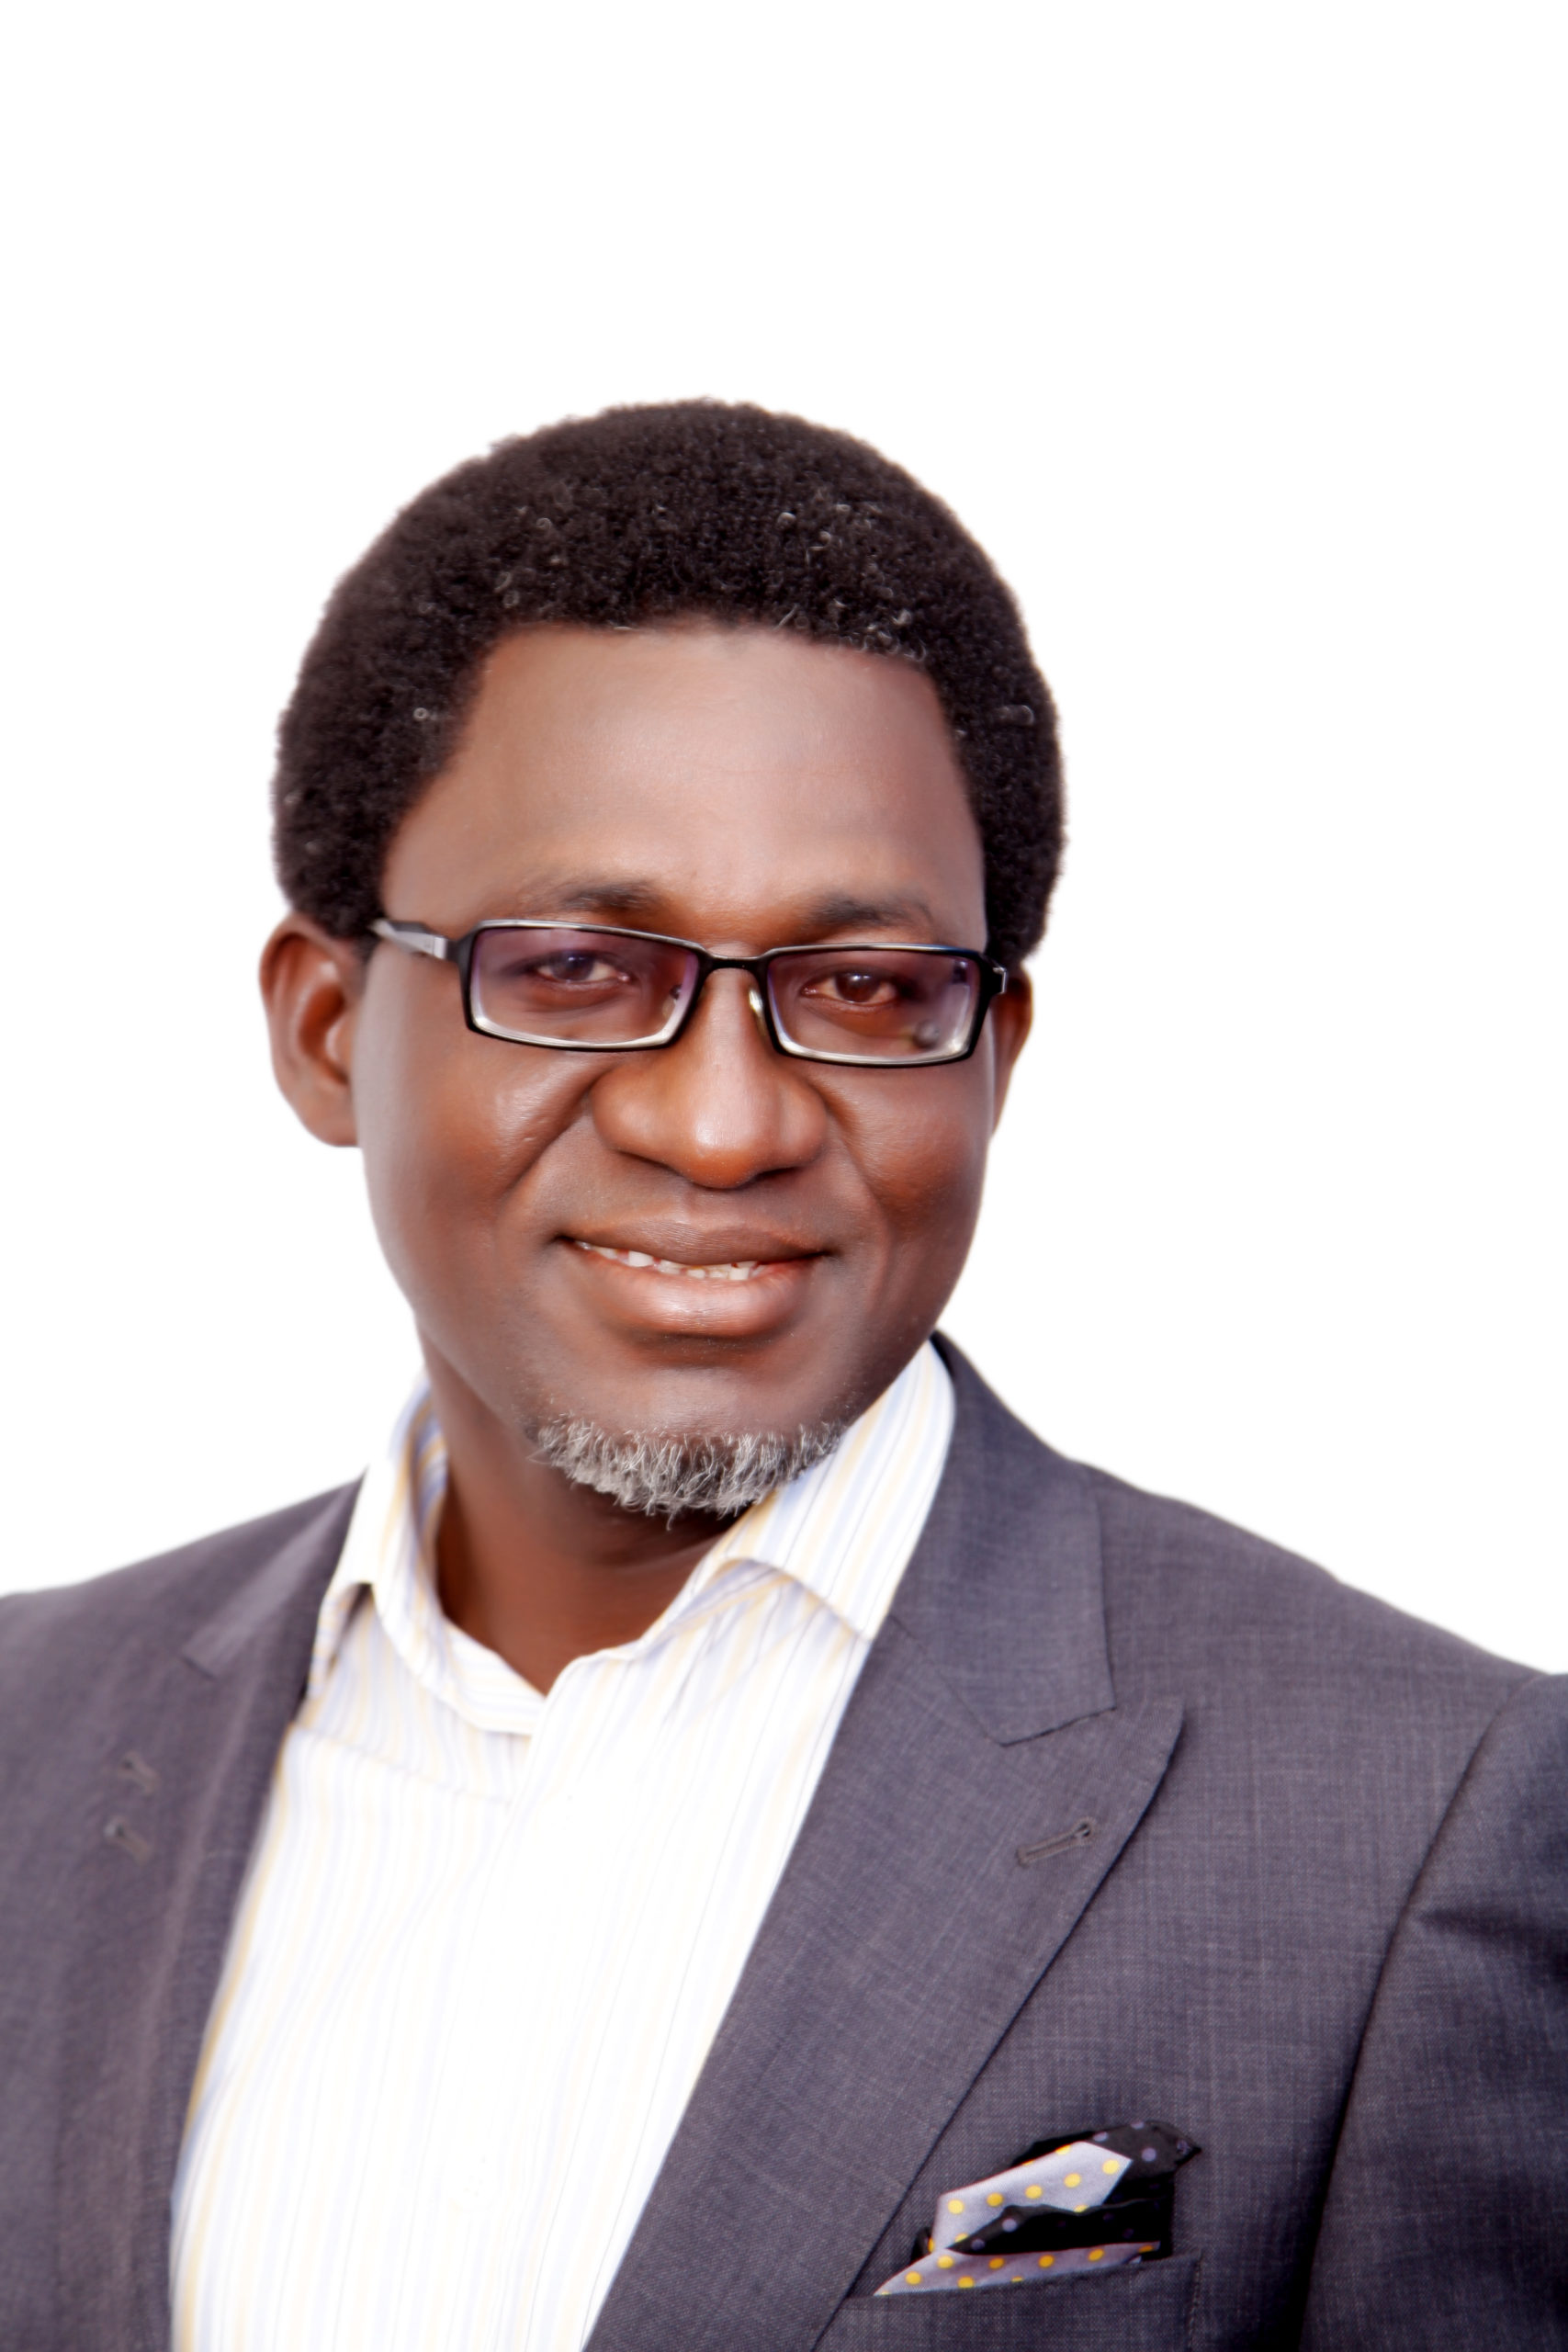 Segun Adaju, president of the Renewable Energy Association of Nigeria and CEO of Consistent Energy